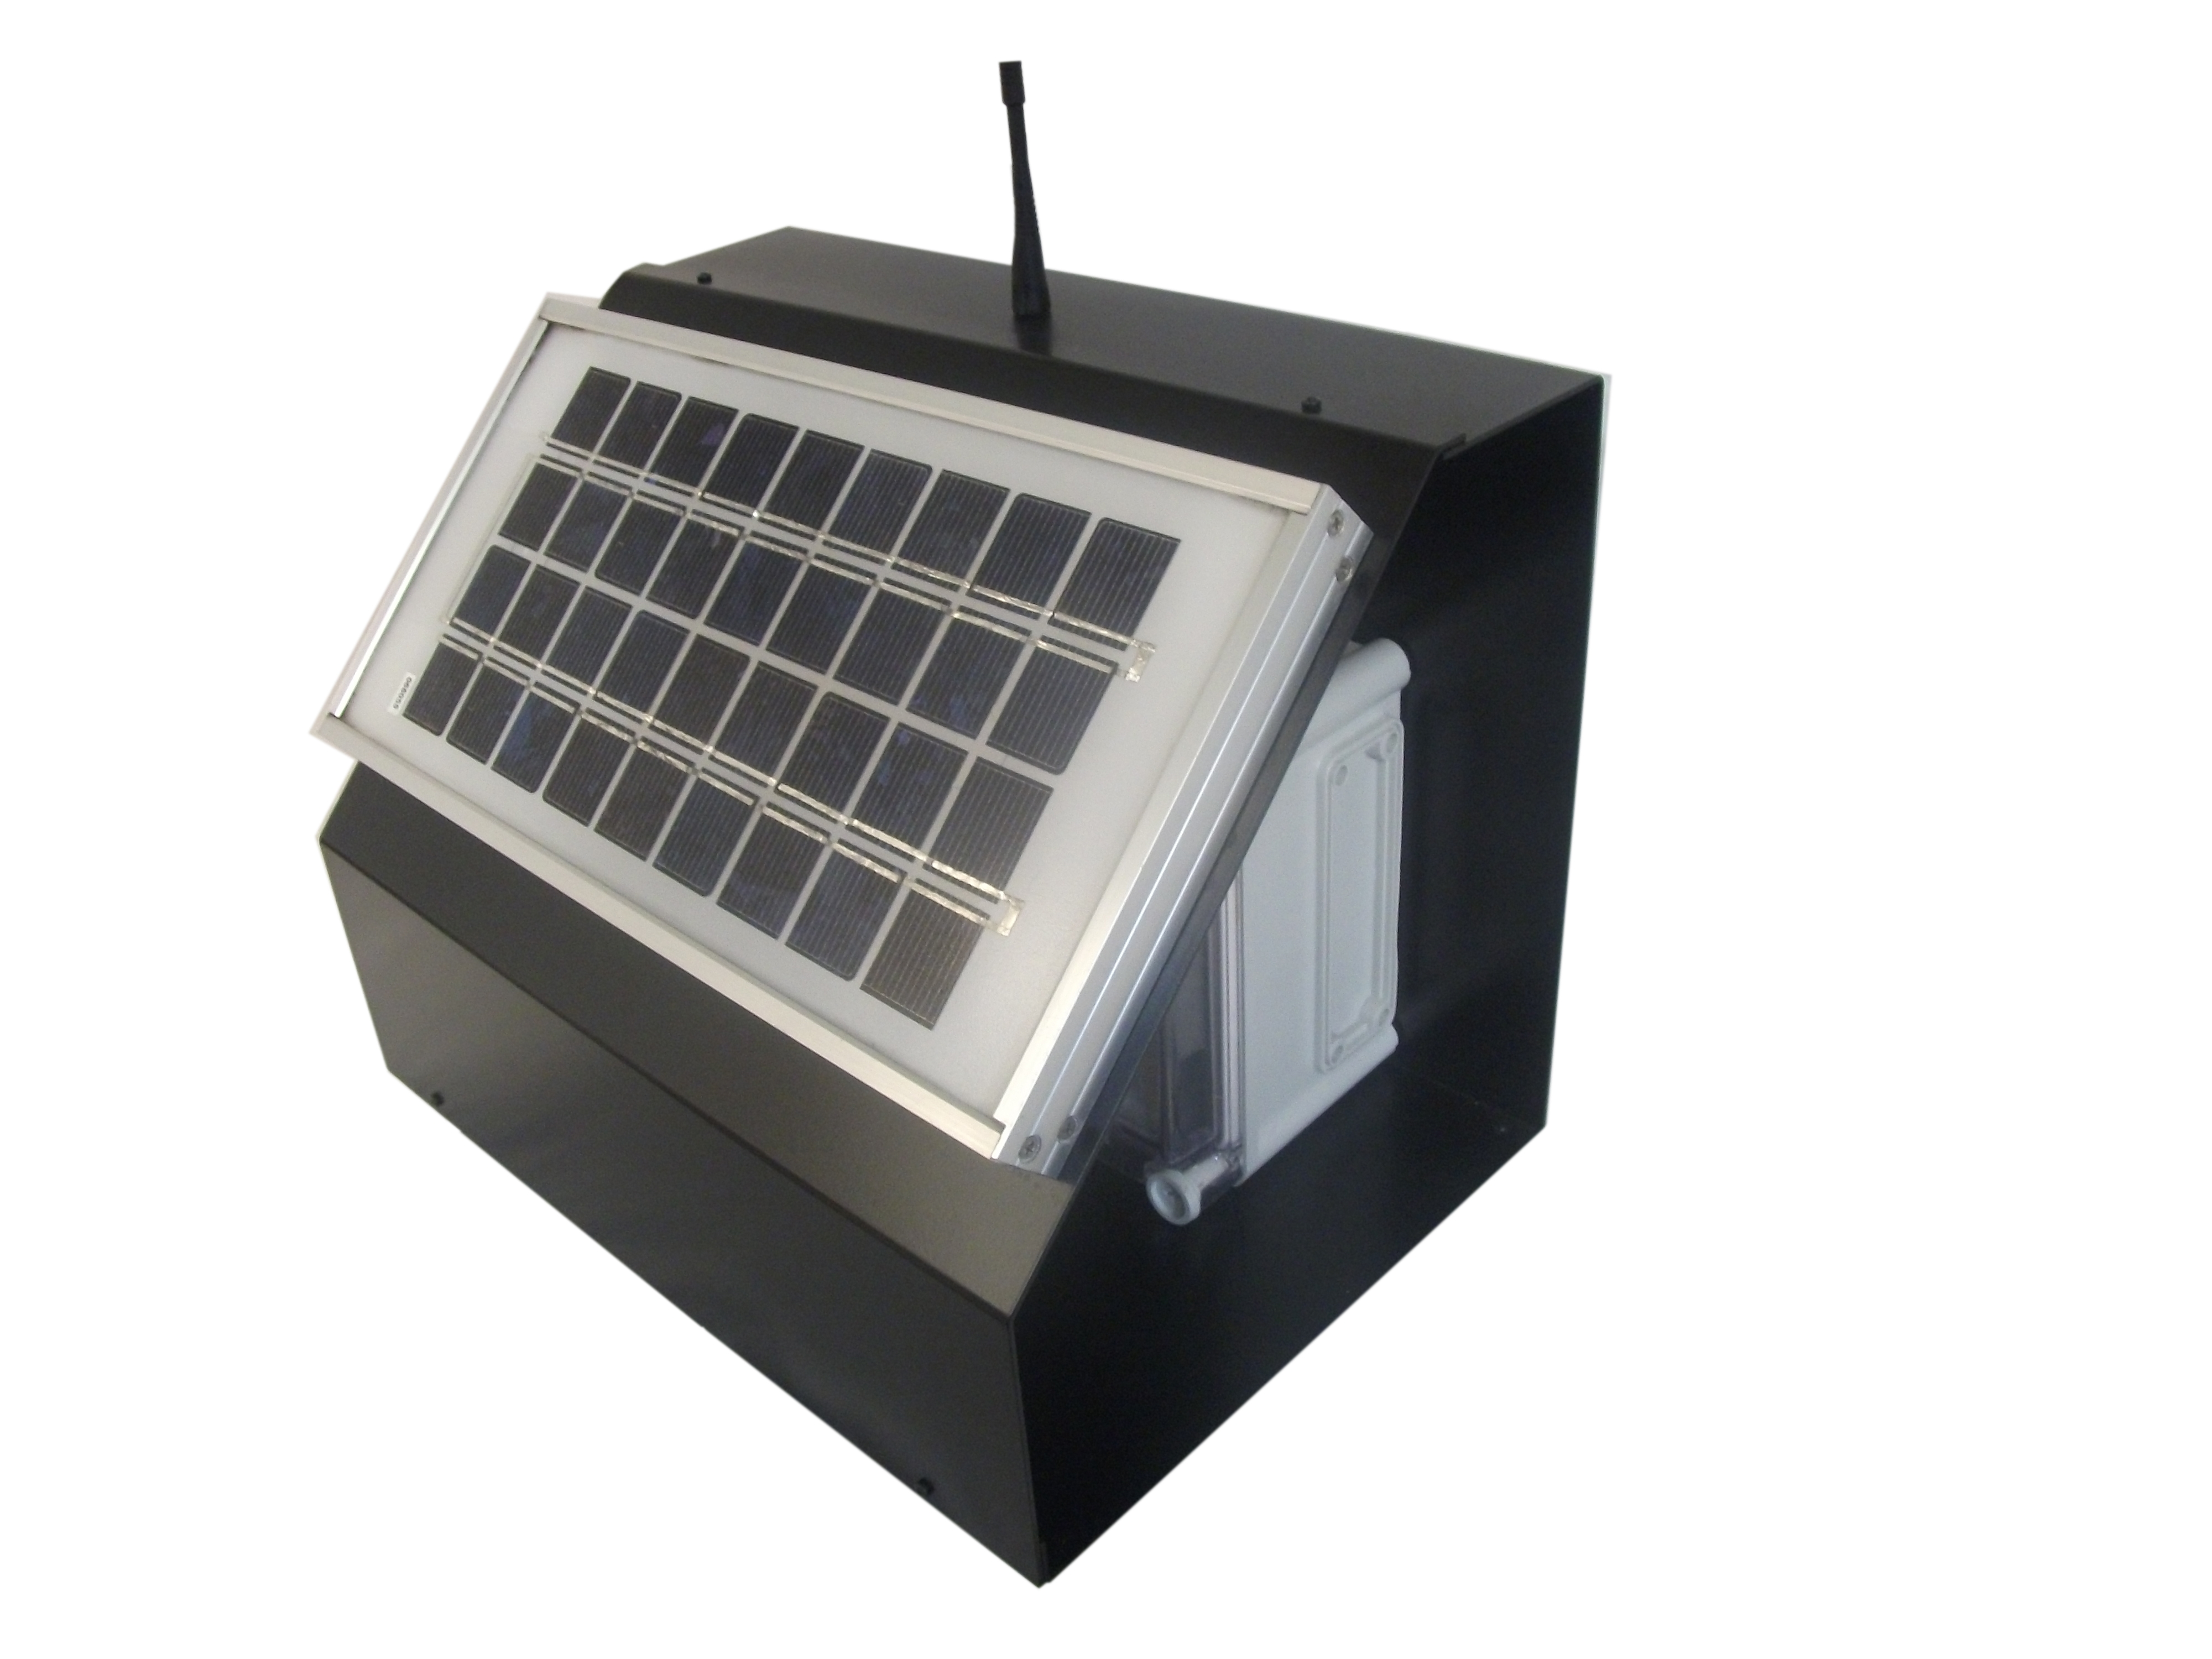 X7130 Solar Powered Telemetry Transmitter